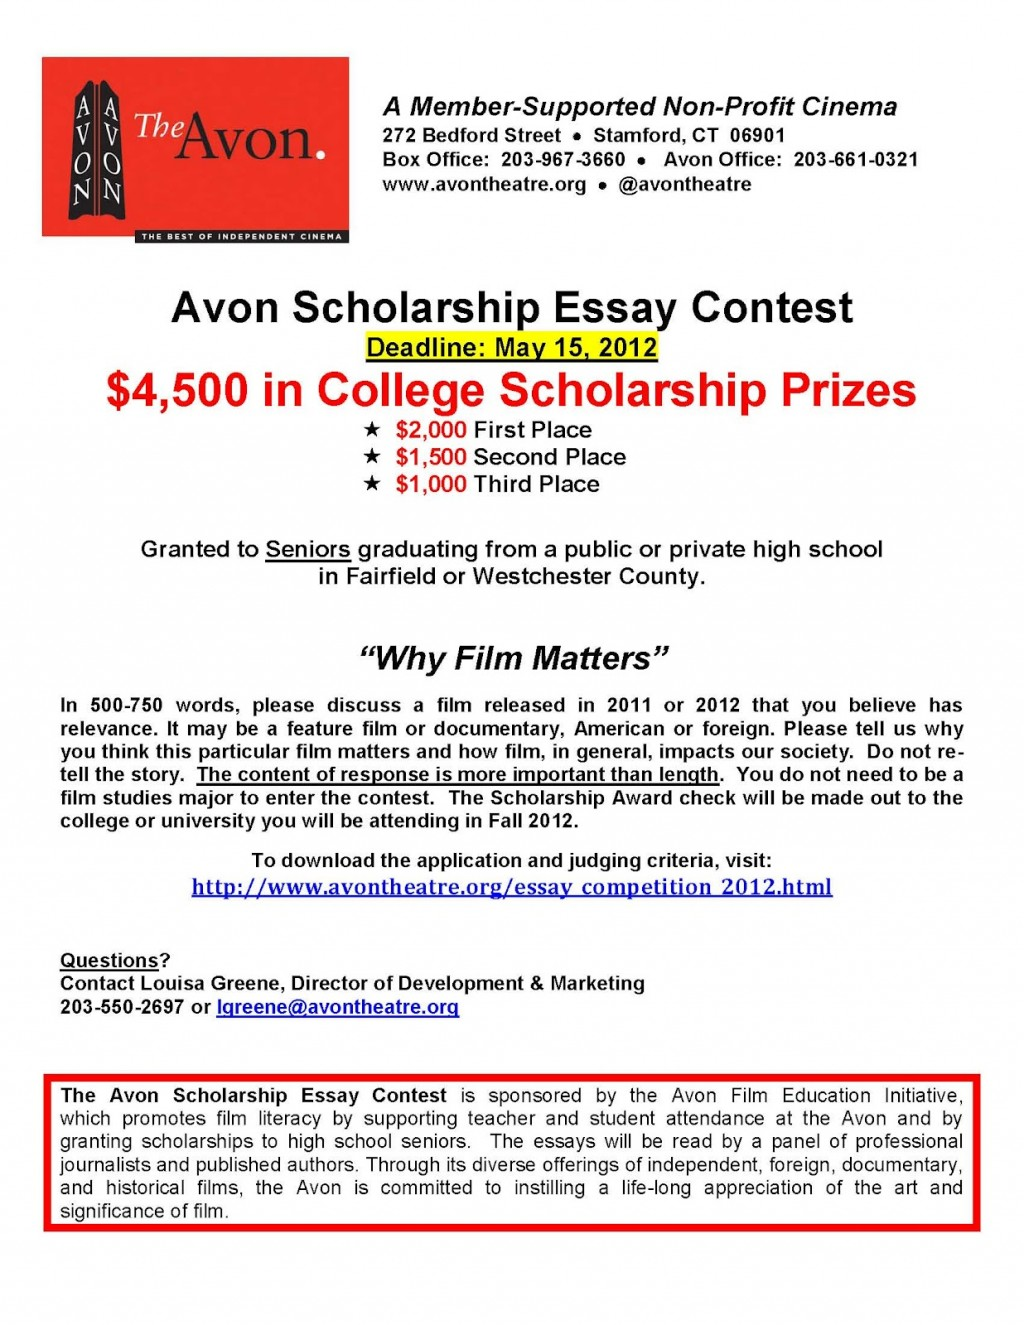 015 No Essay Scholarships Why Apply For Scholarship High School Juniors Avonscholarshipessaycontest2012 Contests Singular 2016 Large